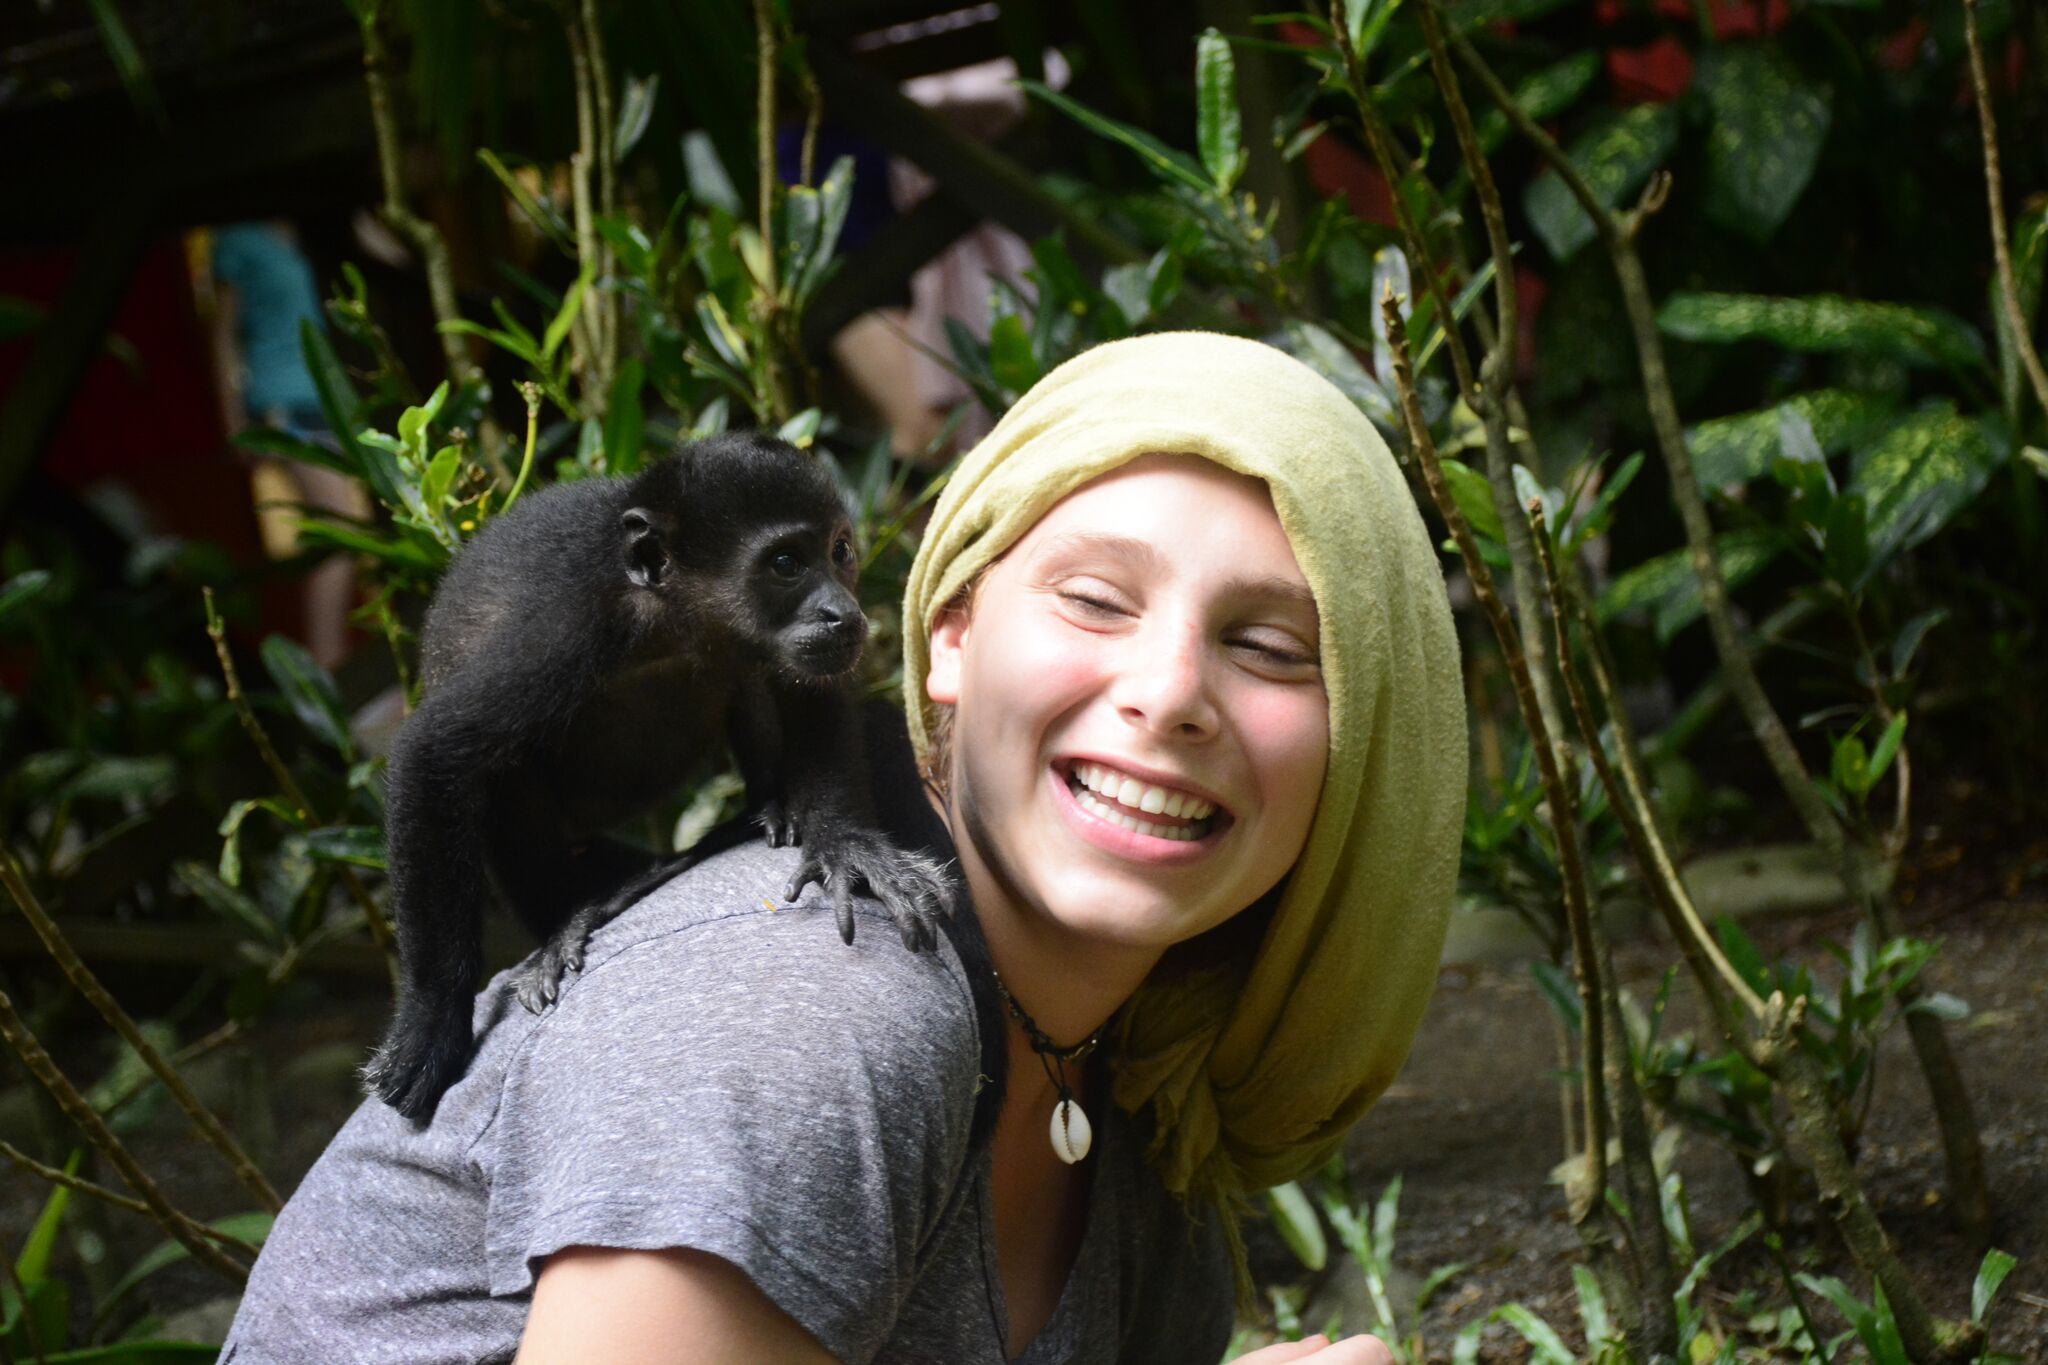 Summer Program - Animal Rights and Rescue | Travel For Teens: Costa Rica Animal Rescue Service